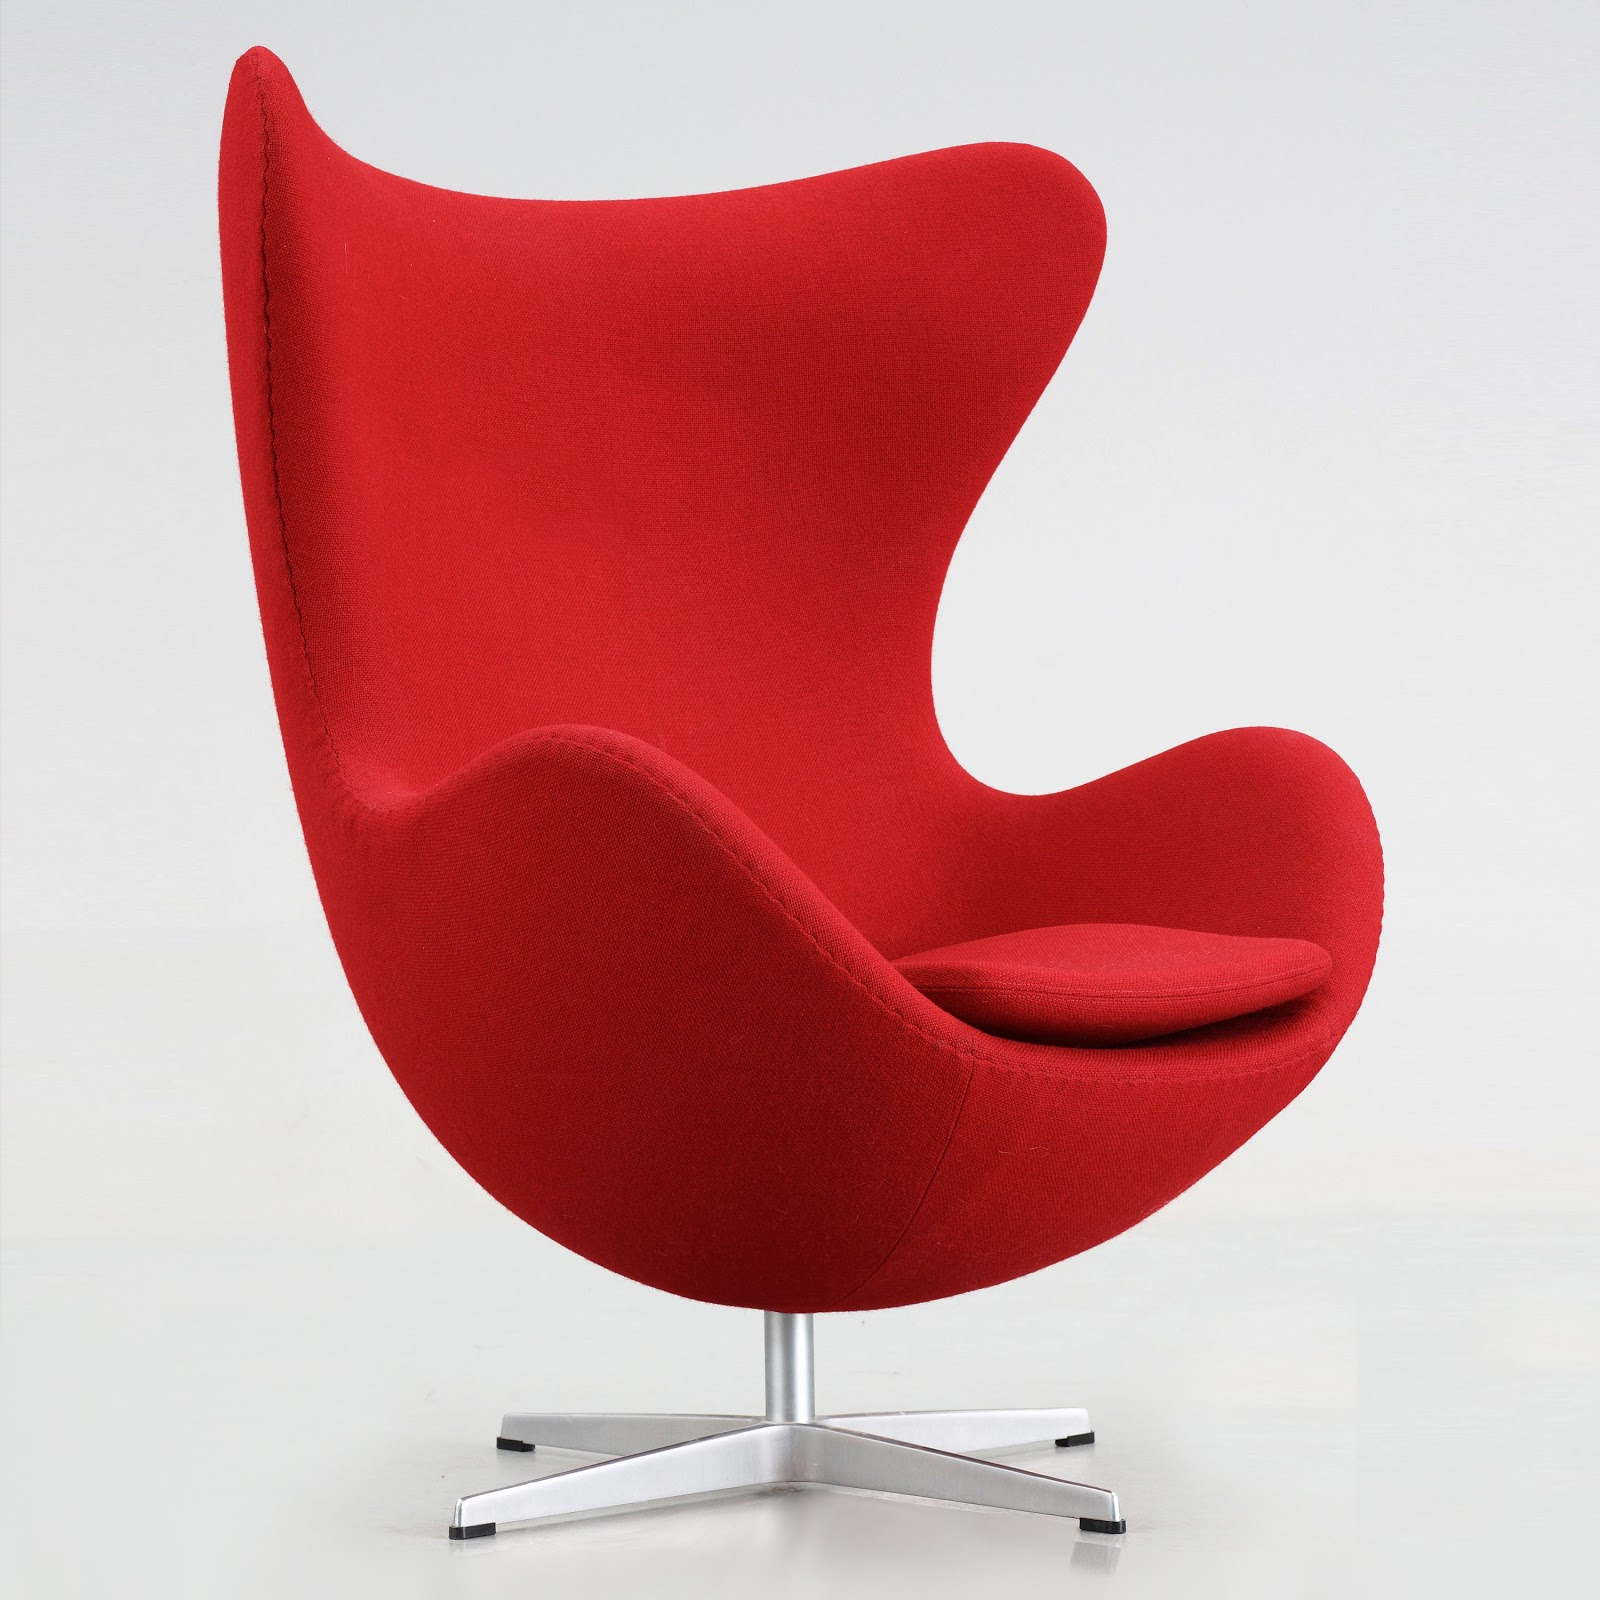 Arne jacobsen egg chair leather - Fritz Hansen Chairs Ebay Egg Elegance Black Png Swan Lounge Chair From The Sixties By Arne Jacobsen For Fritz Hansen Ant Chair Fritz Hansen Orange Chair